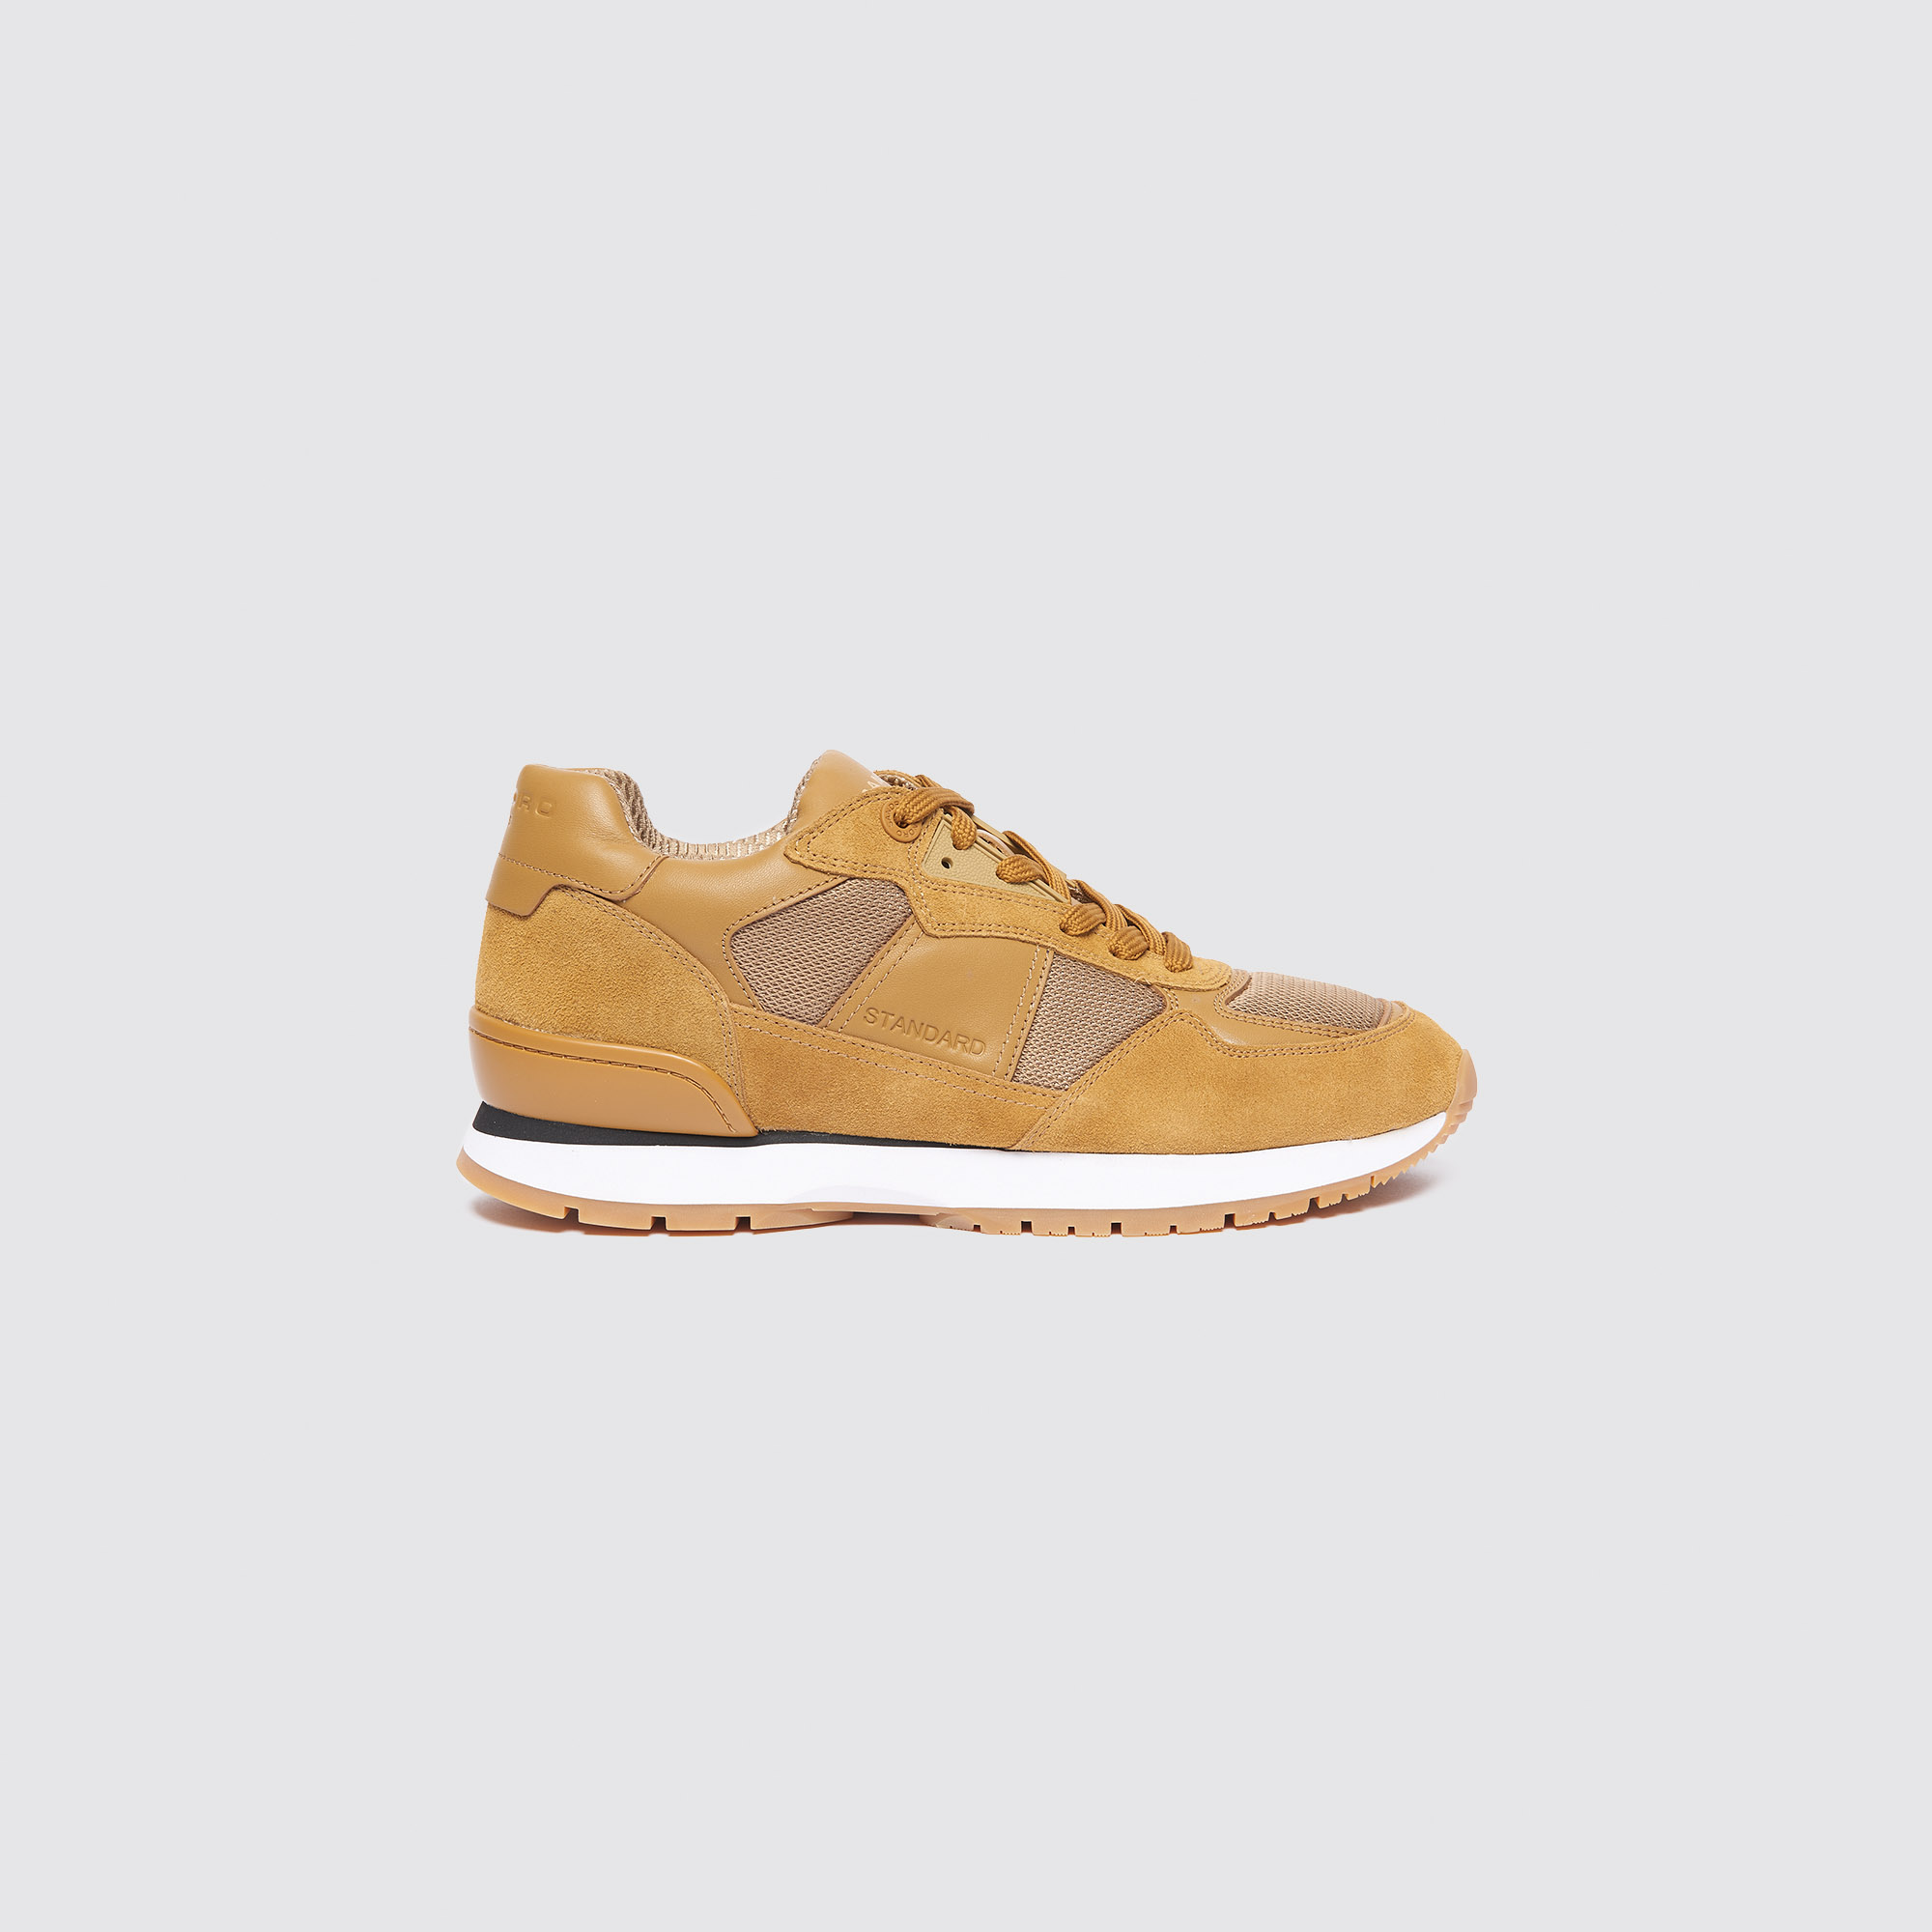 c3345e2b6 Dual Material Running Trainers : Shoes color Camel ...